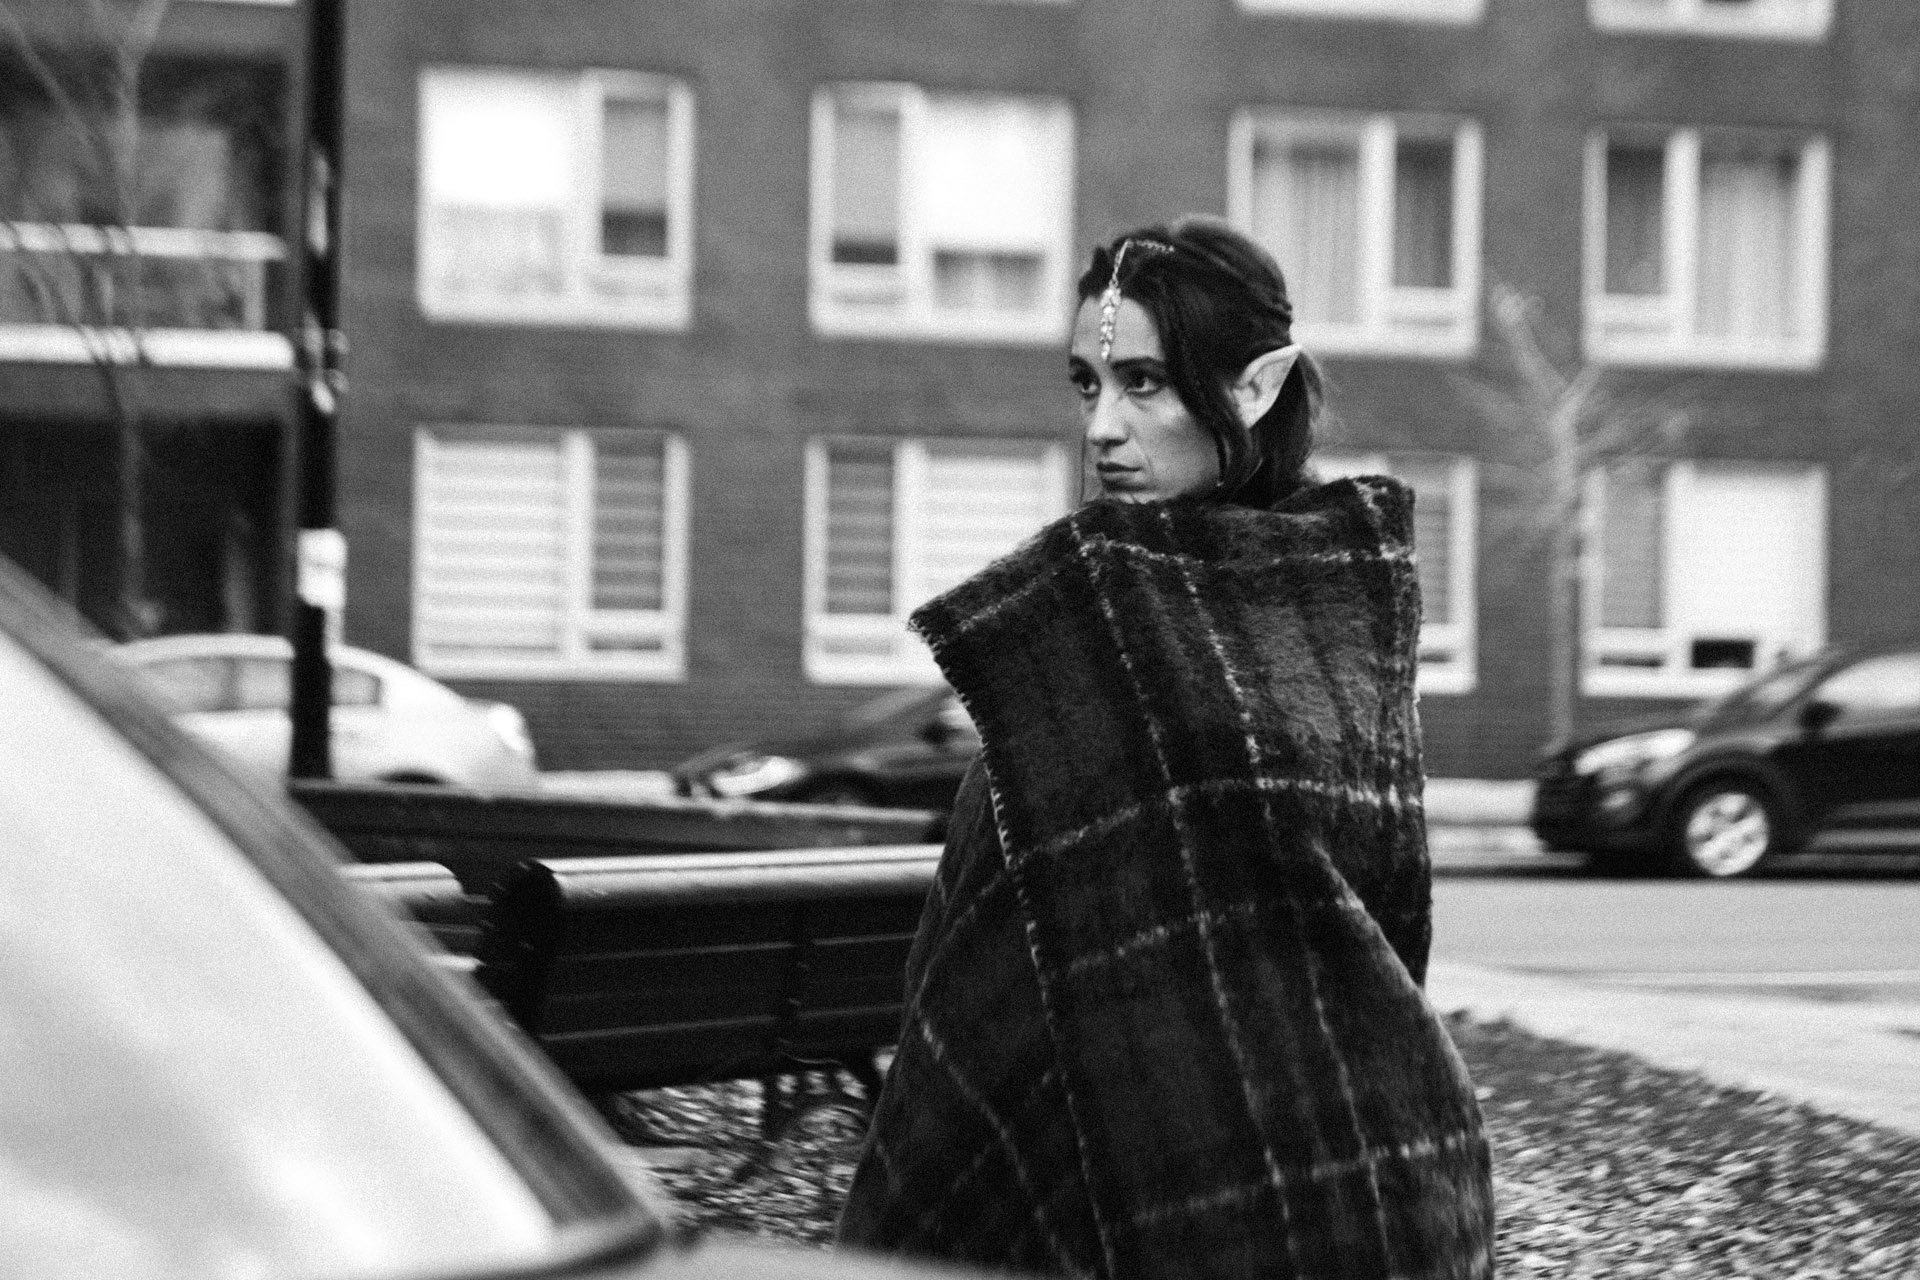 actress dressed as an elf outside keeping blanket snug around her in behind the scenes of TV series La Loi C'est La Loi filmed by Les Gamins for TV5 Unis